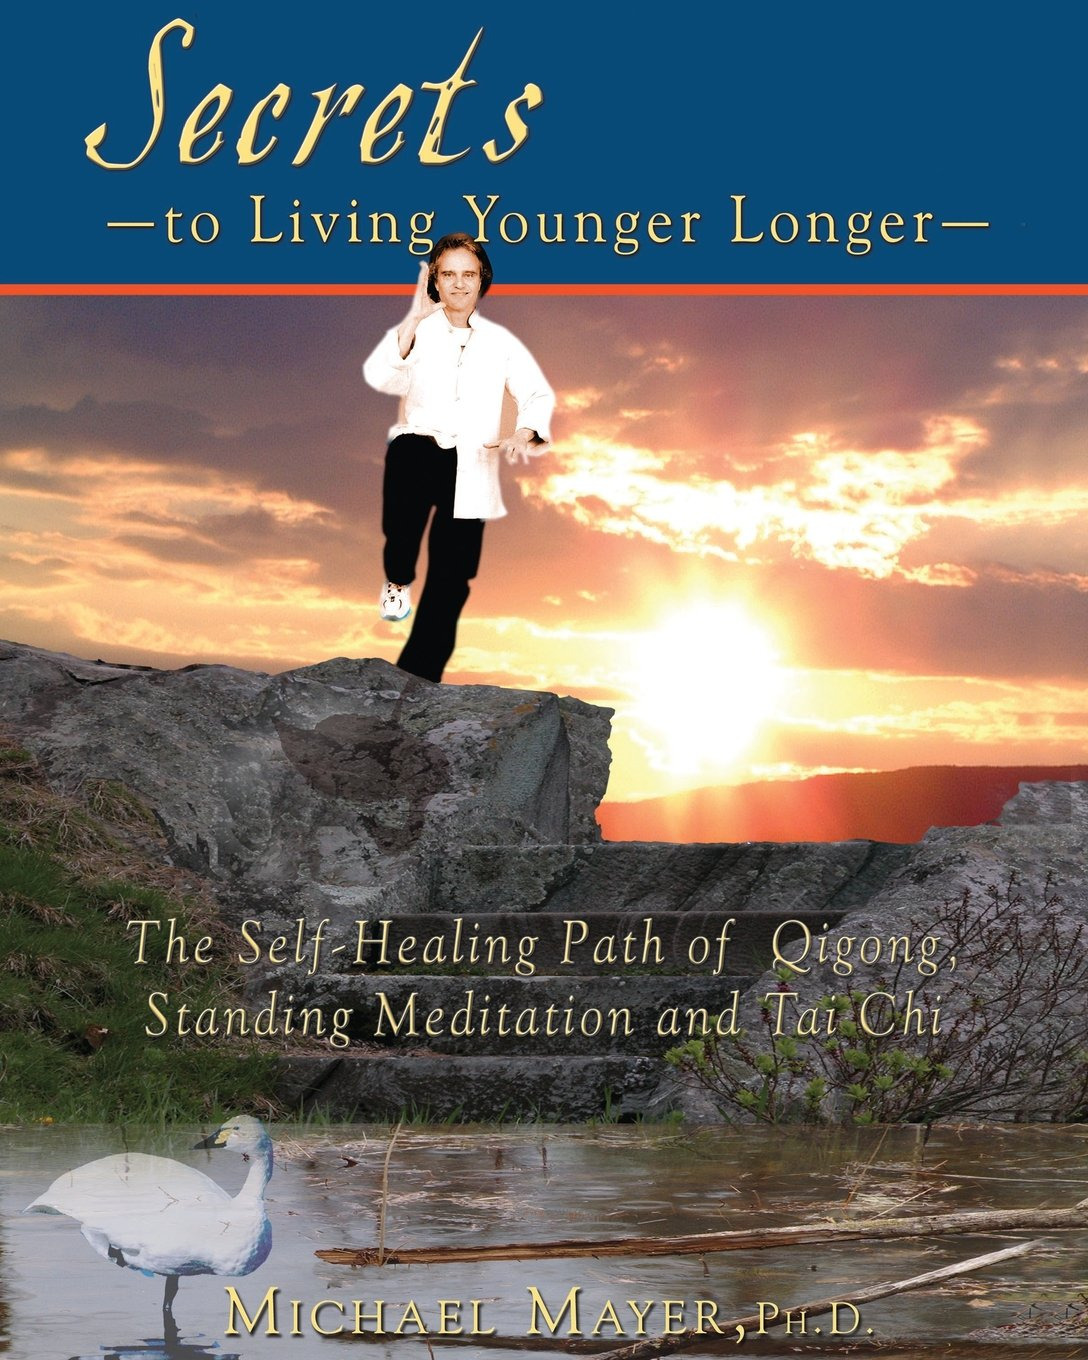 Download Secrets to Living Younger Longer: The Self-Healing Path of Qigong, Standing Meditation and Tai Chi PDF